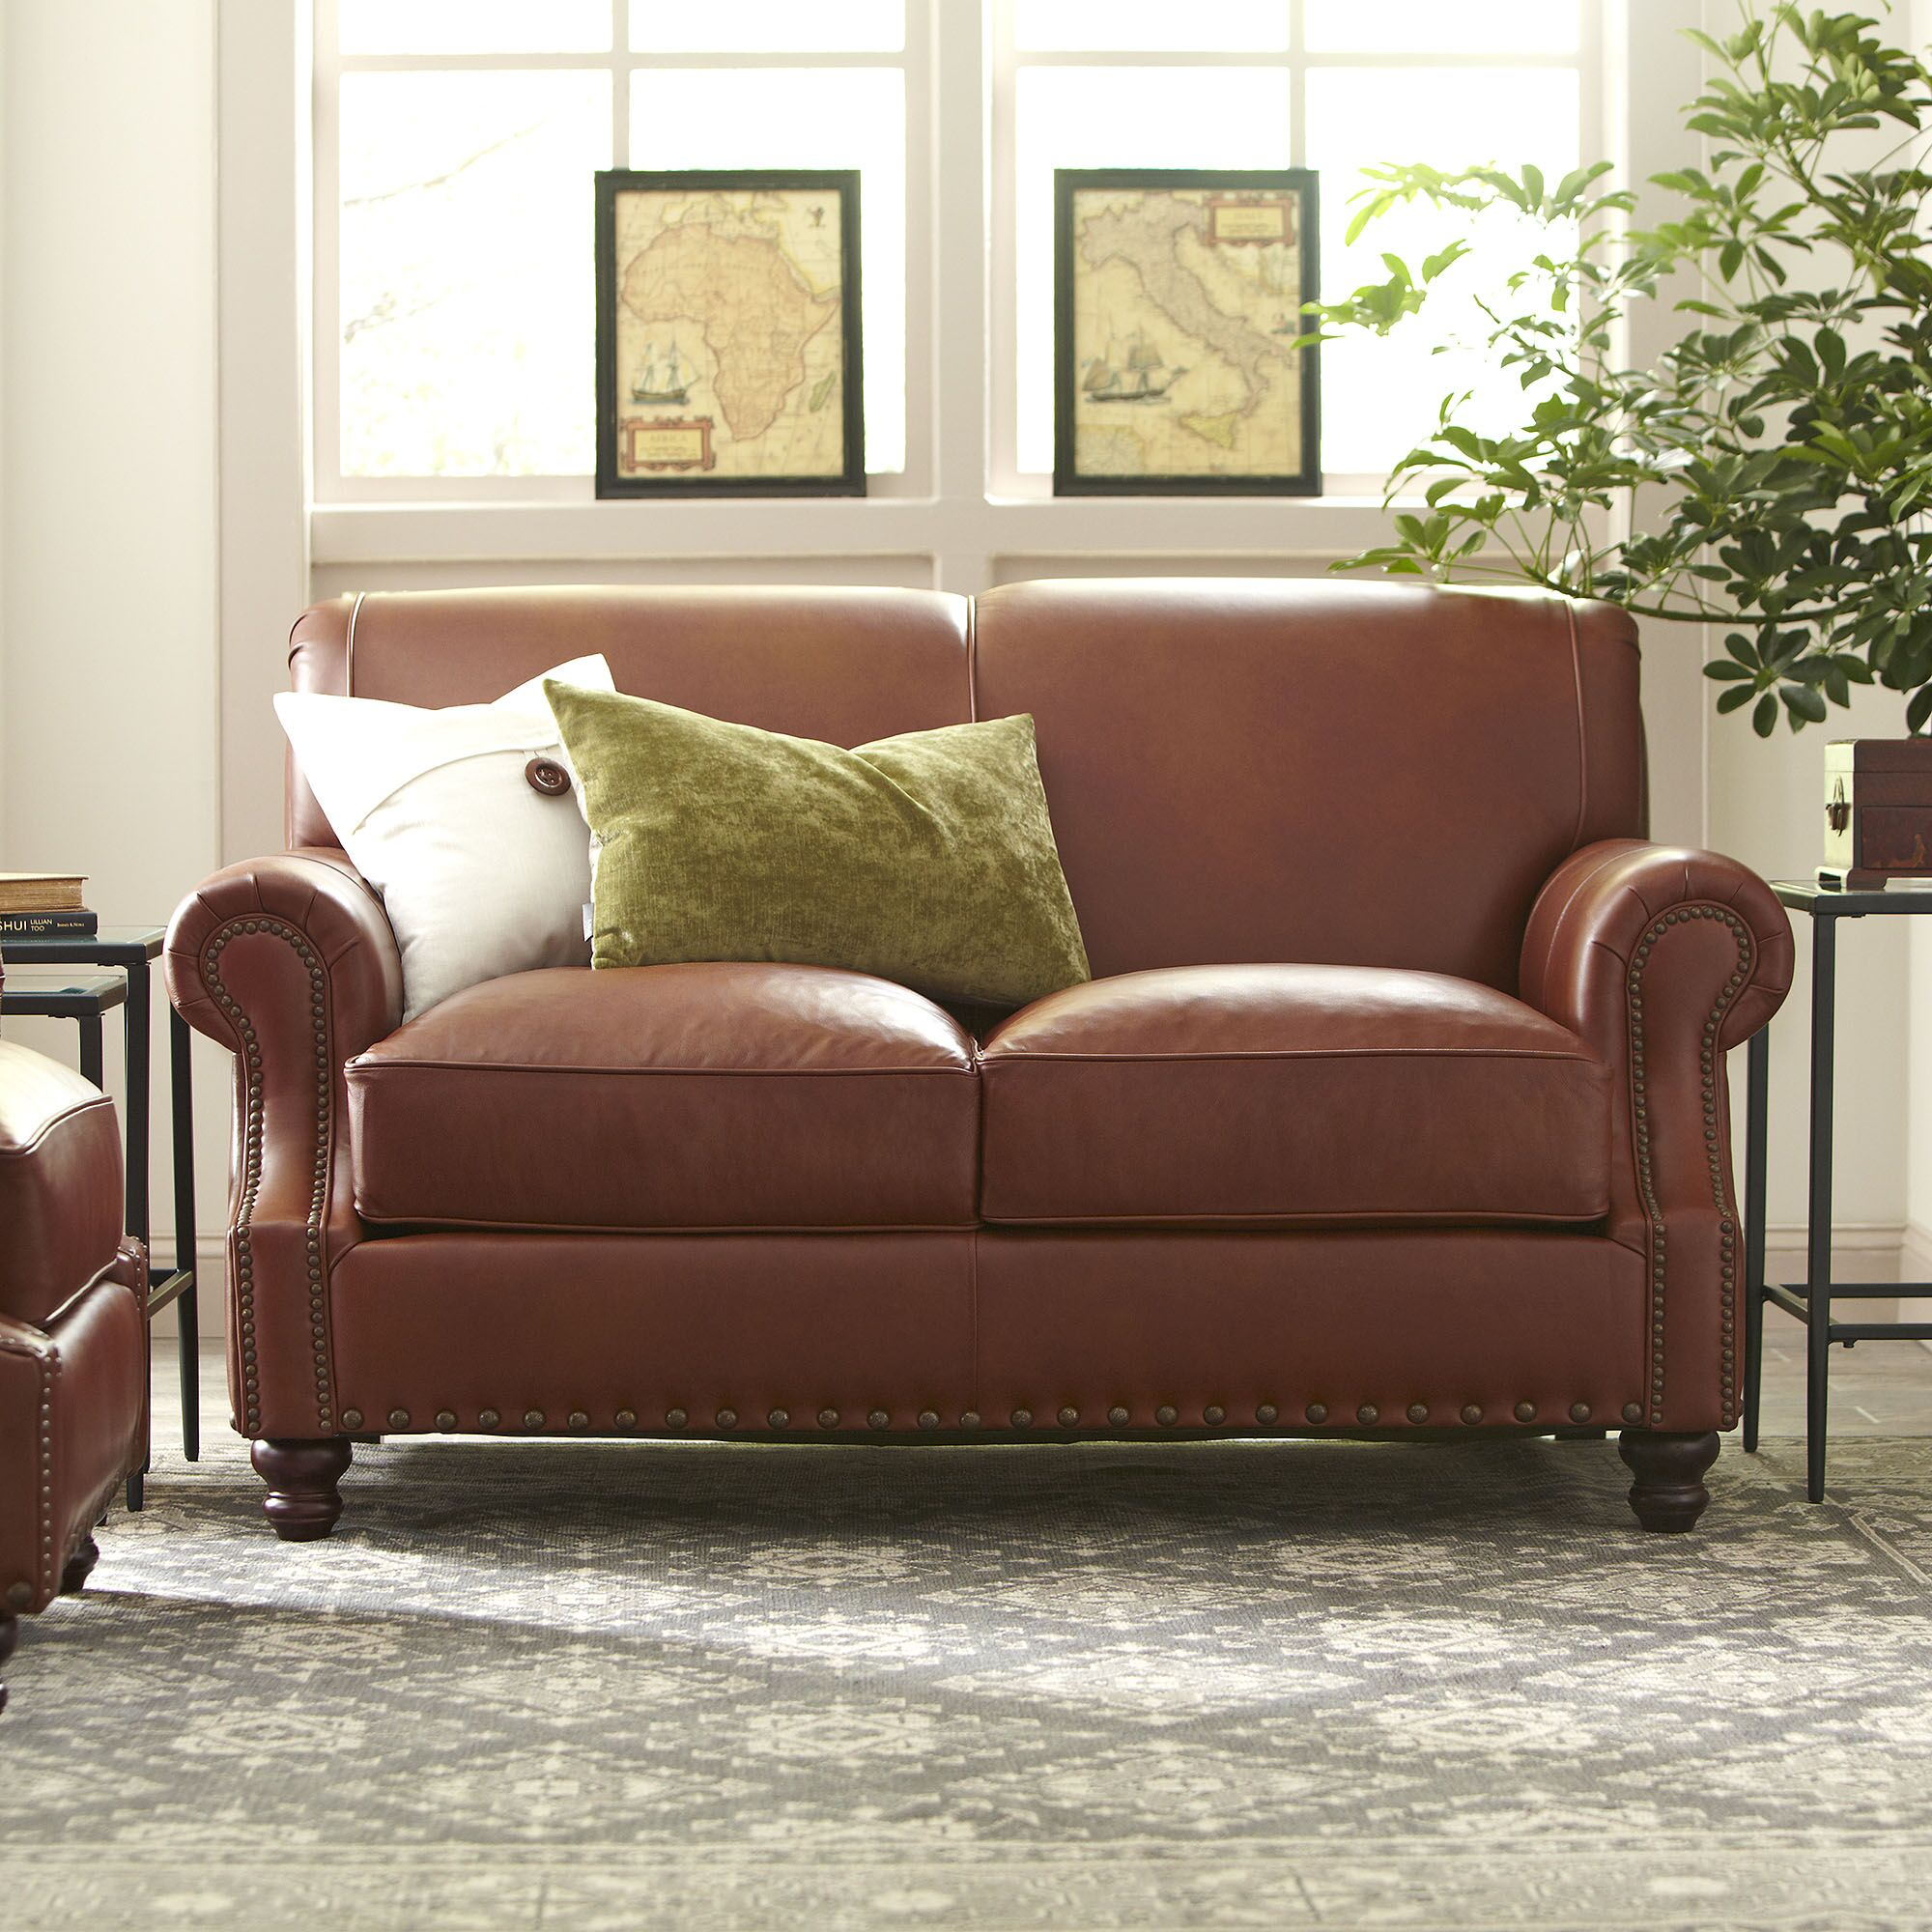 Landry Leather Loveseat Body Fabric: Steamboat Putty, Nailhead Detail: Old Gold